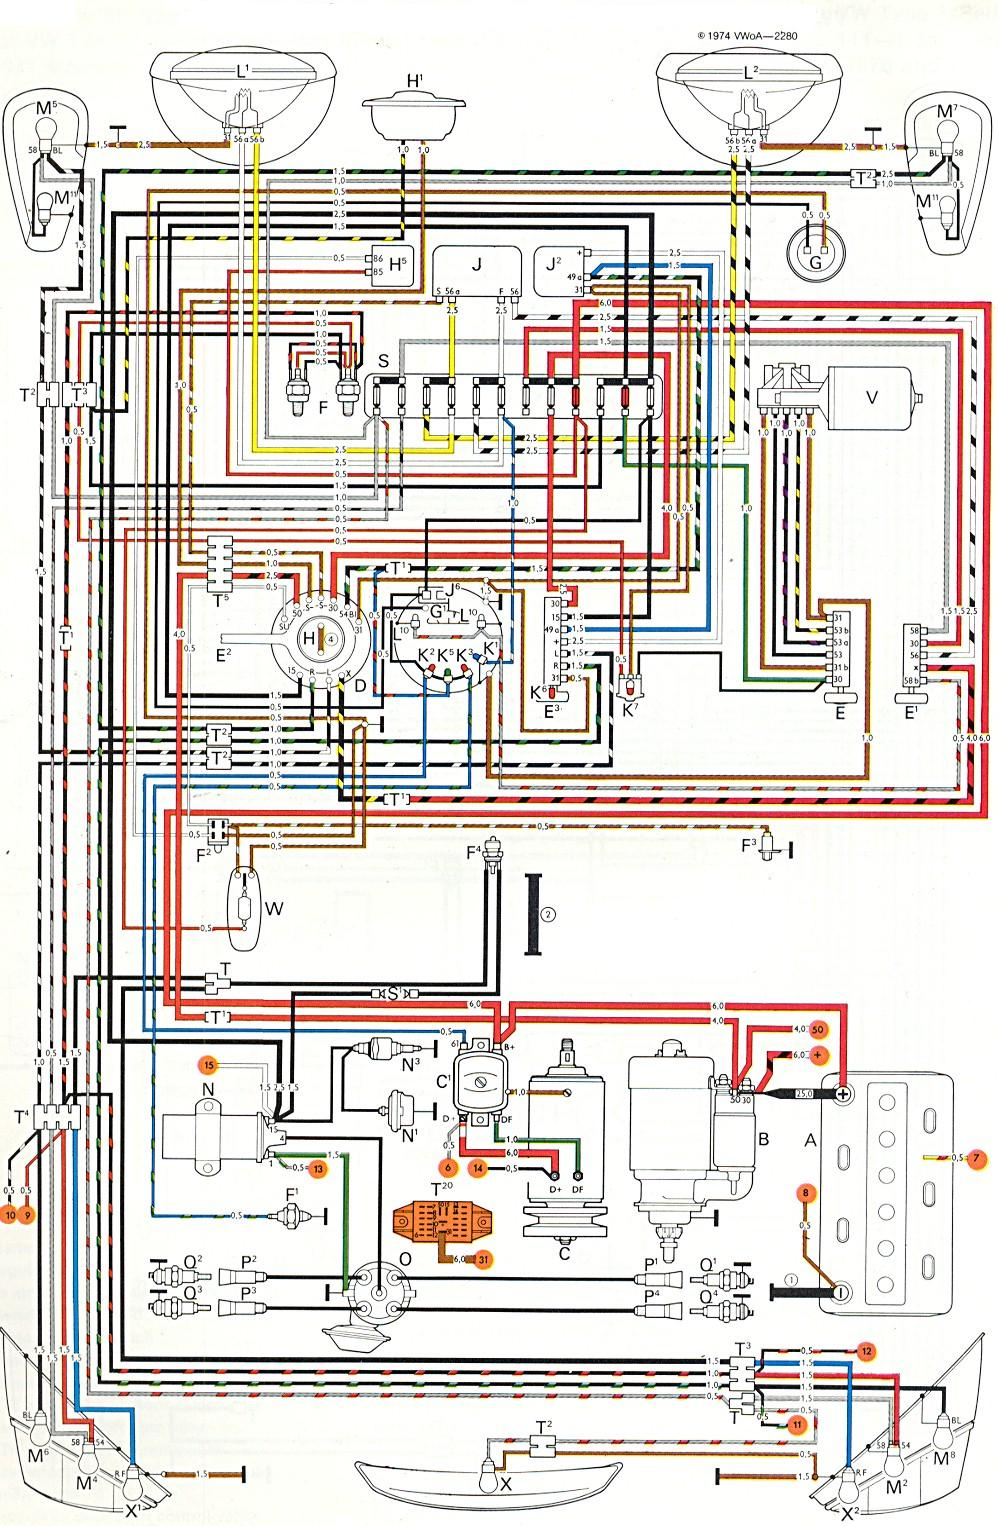 1973 Vw Wiring Coil Diagram Libraries Buzzer Schematic 1974 Beetle Headlight Data72 Super Data